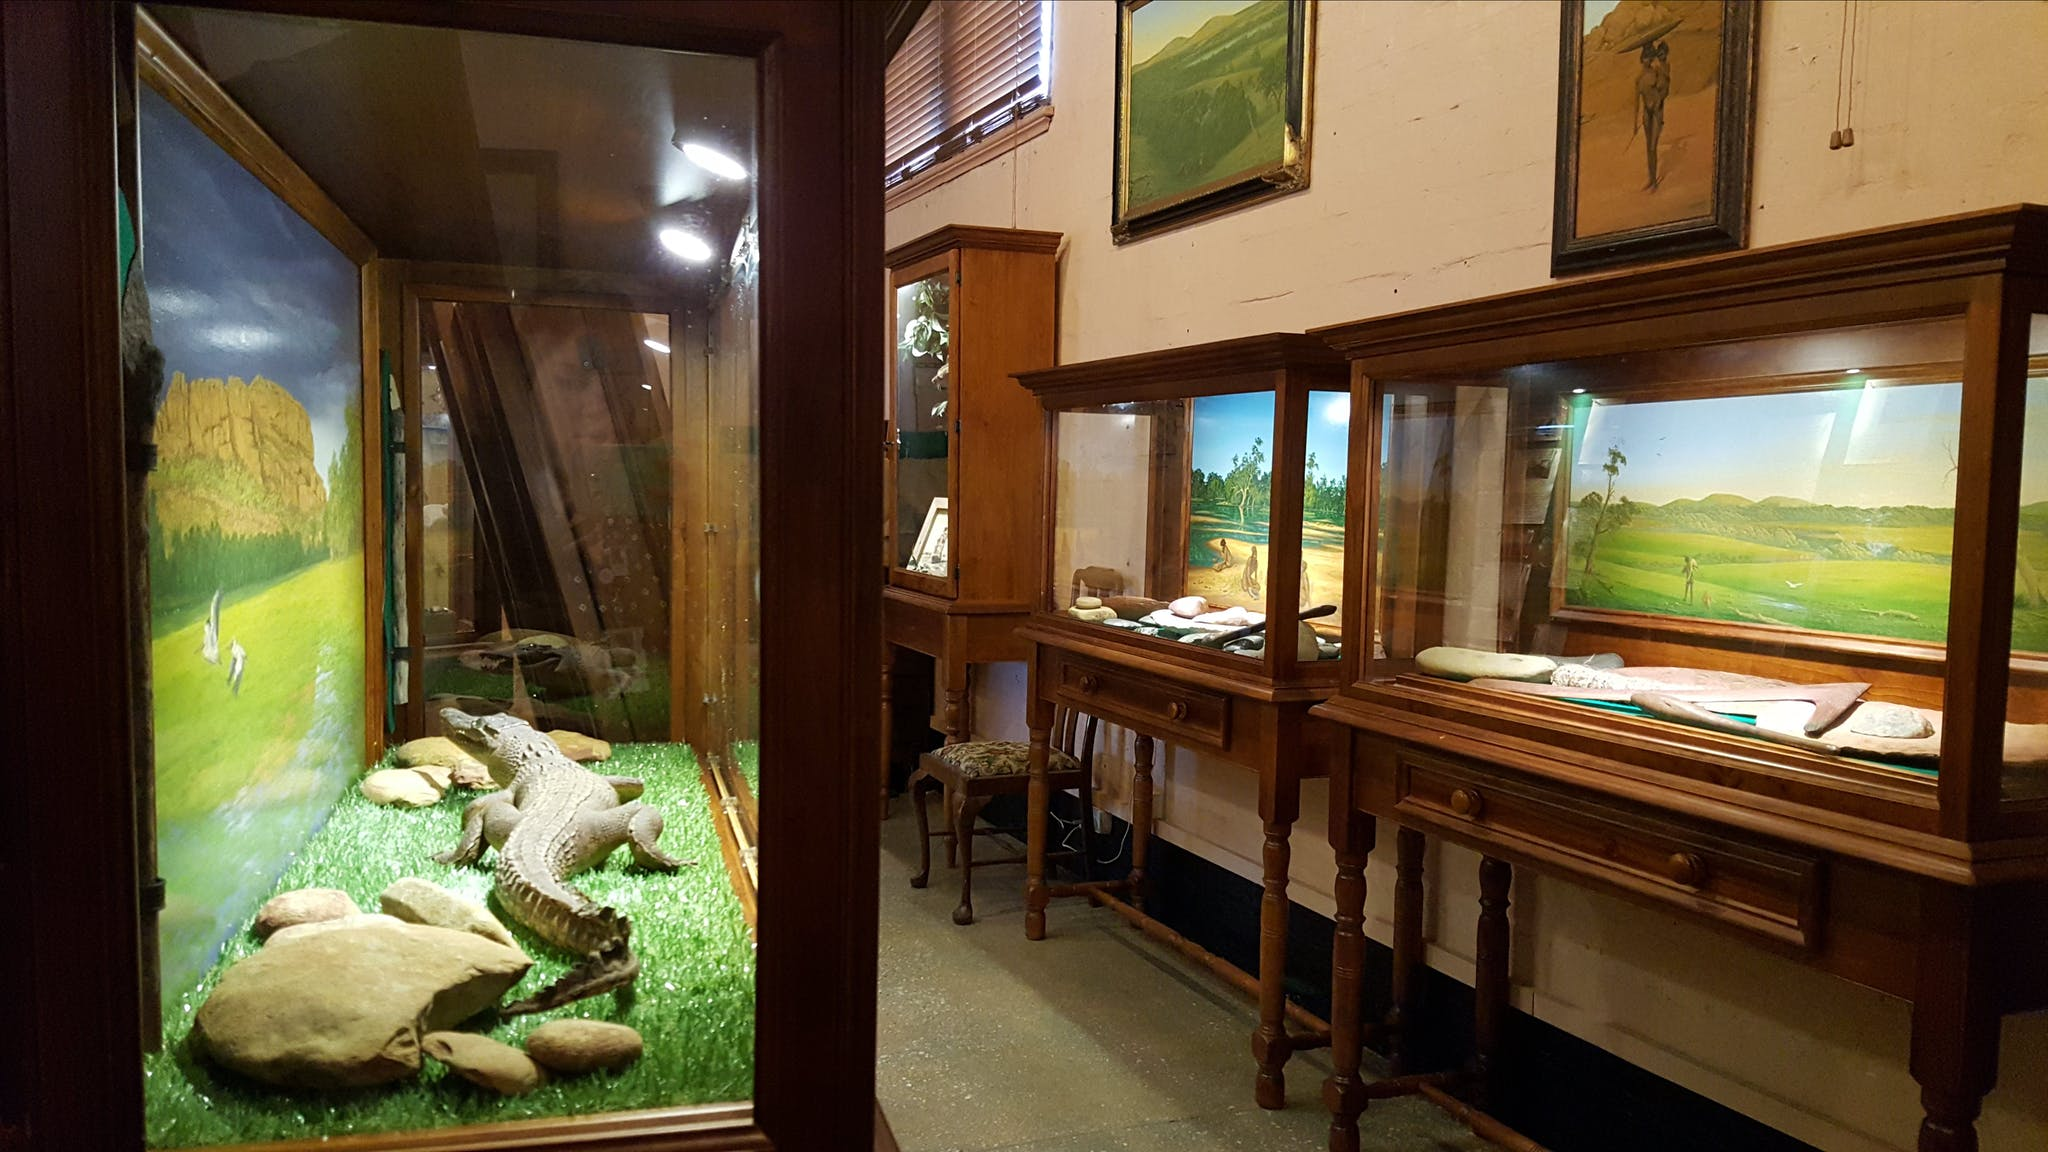 Interior of the Museum